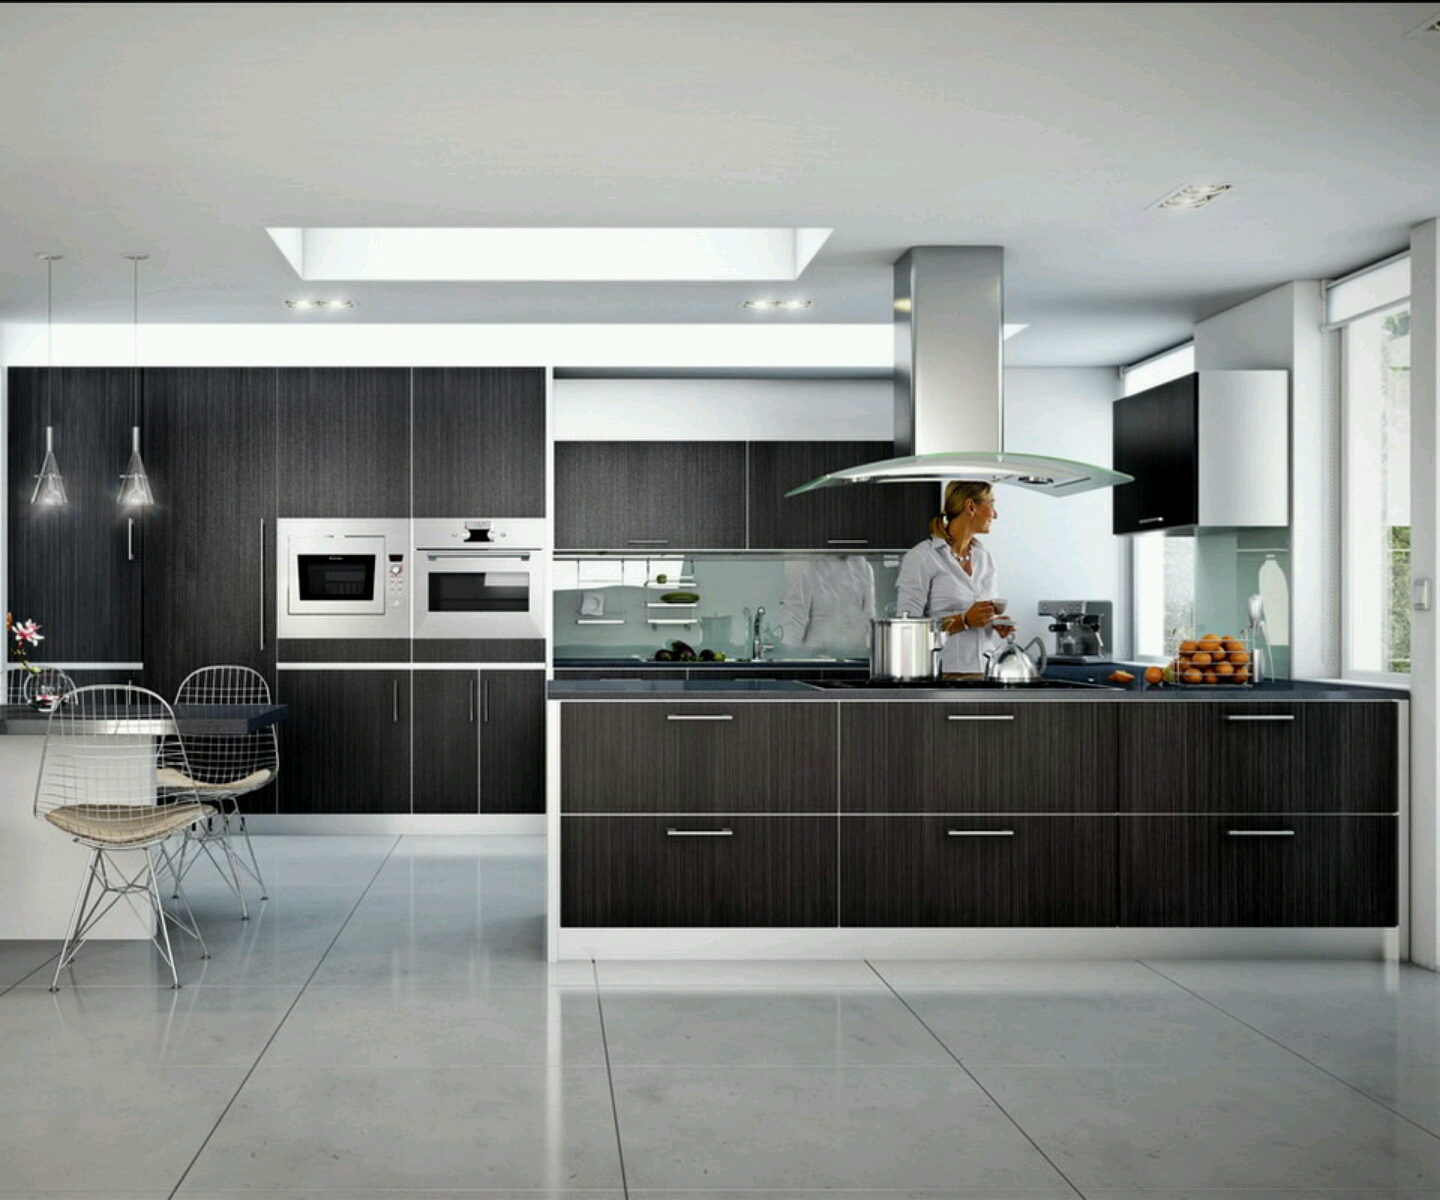 Modern kitchen designs photo gallery decorating ideas for New kitchen ideas